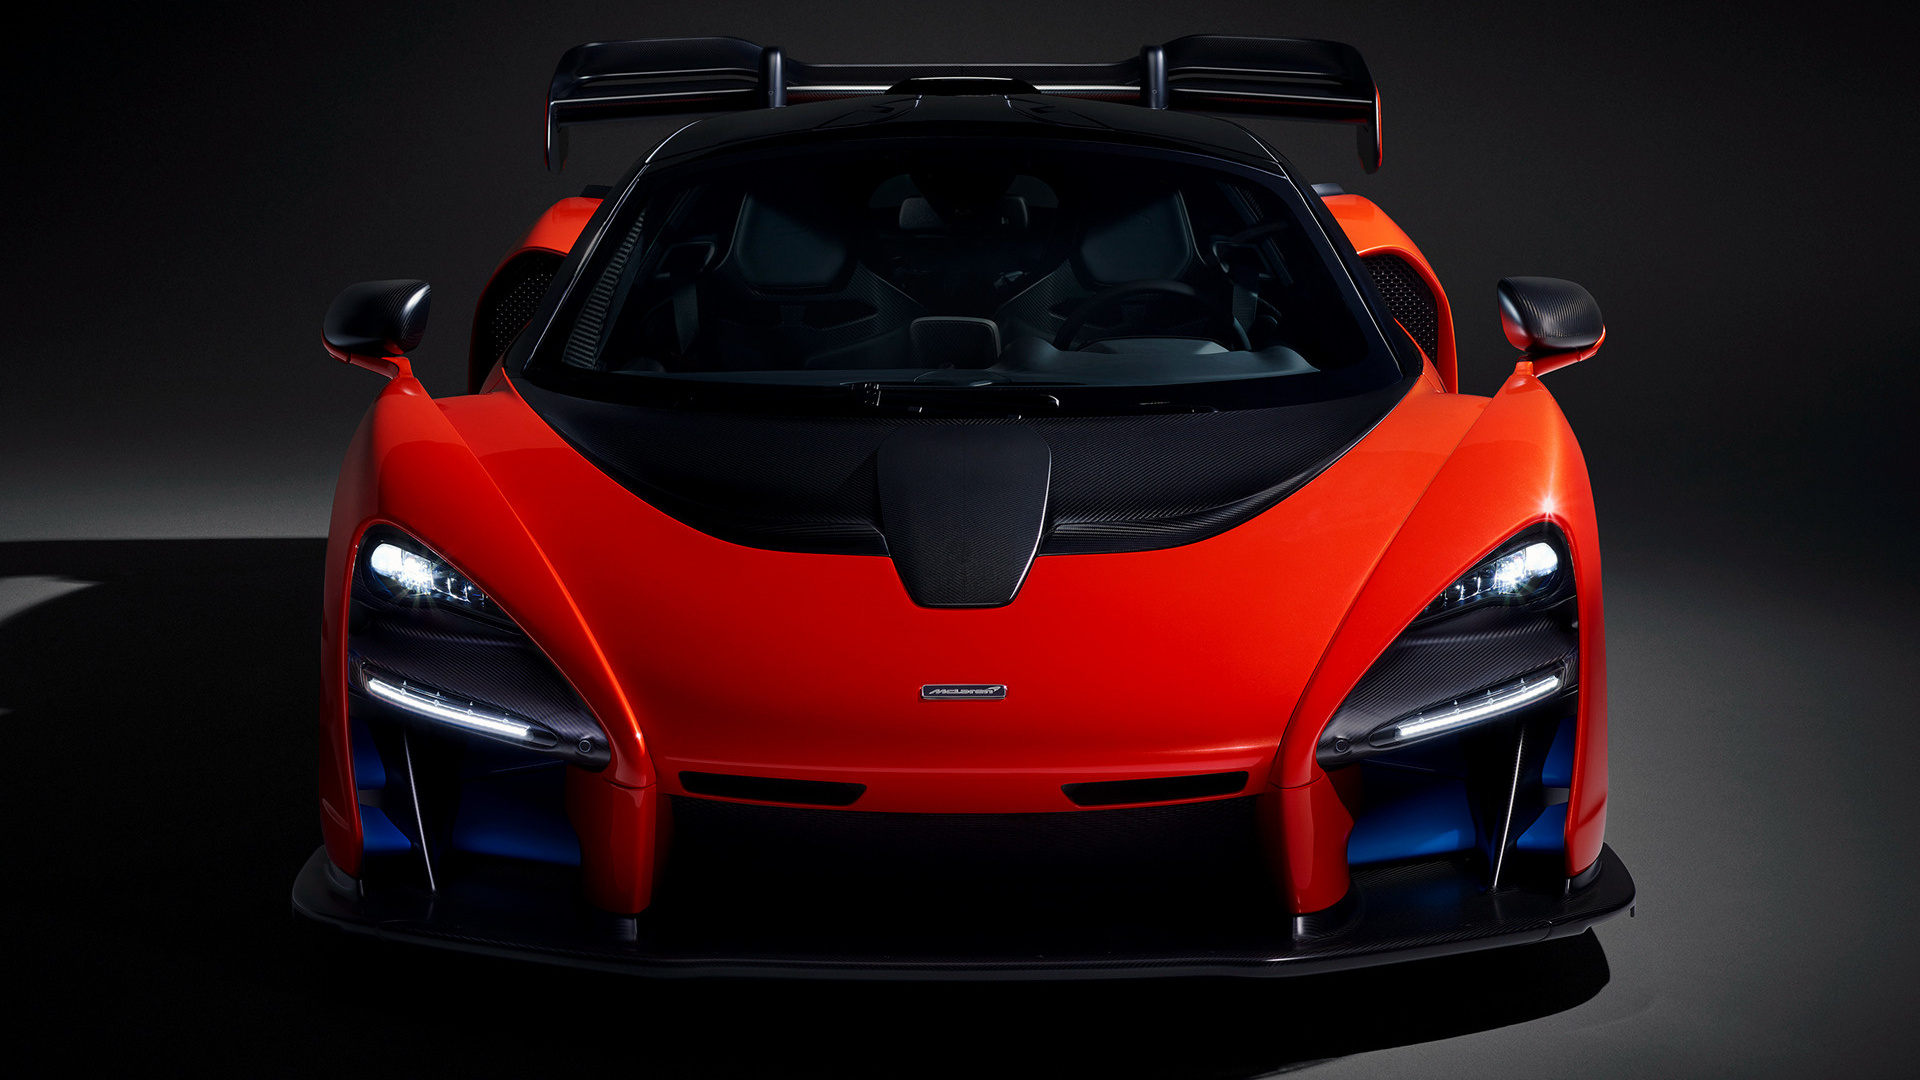 2018 McLaren Senna - Wallpapers and HD Images | Car Pixel